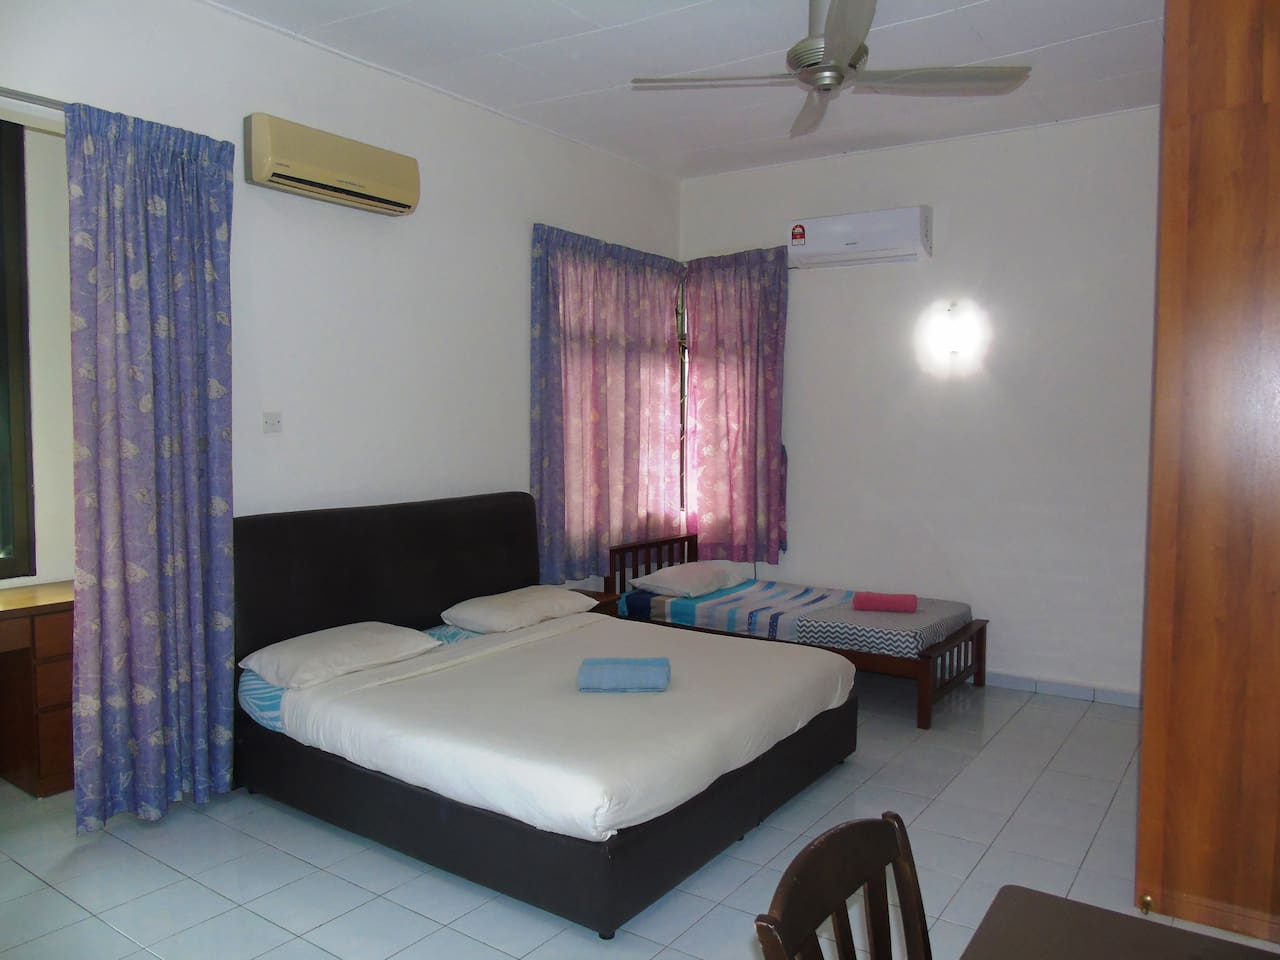 Spacious, large and convenient master room with attached bathroom, few wardrobes with drawers, desktop and big windows. Convenient place to work with fiber optic WiFi (if necessary can provide cable connection to router)